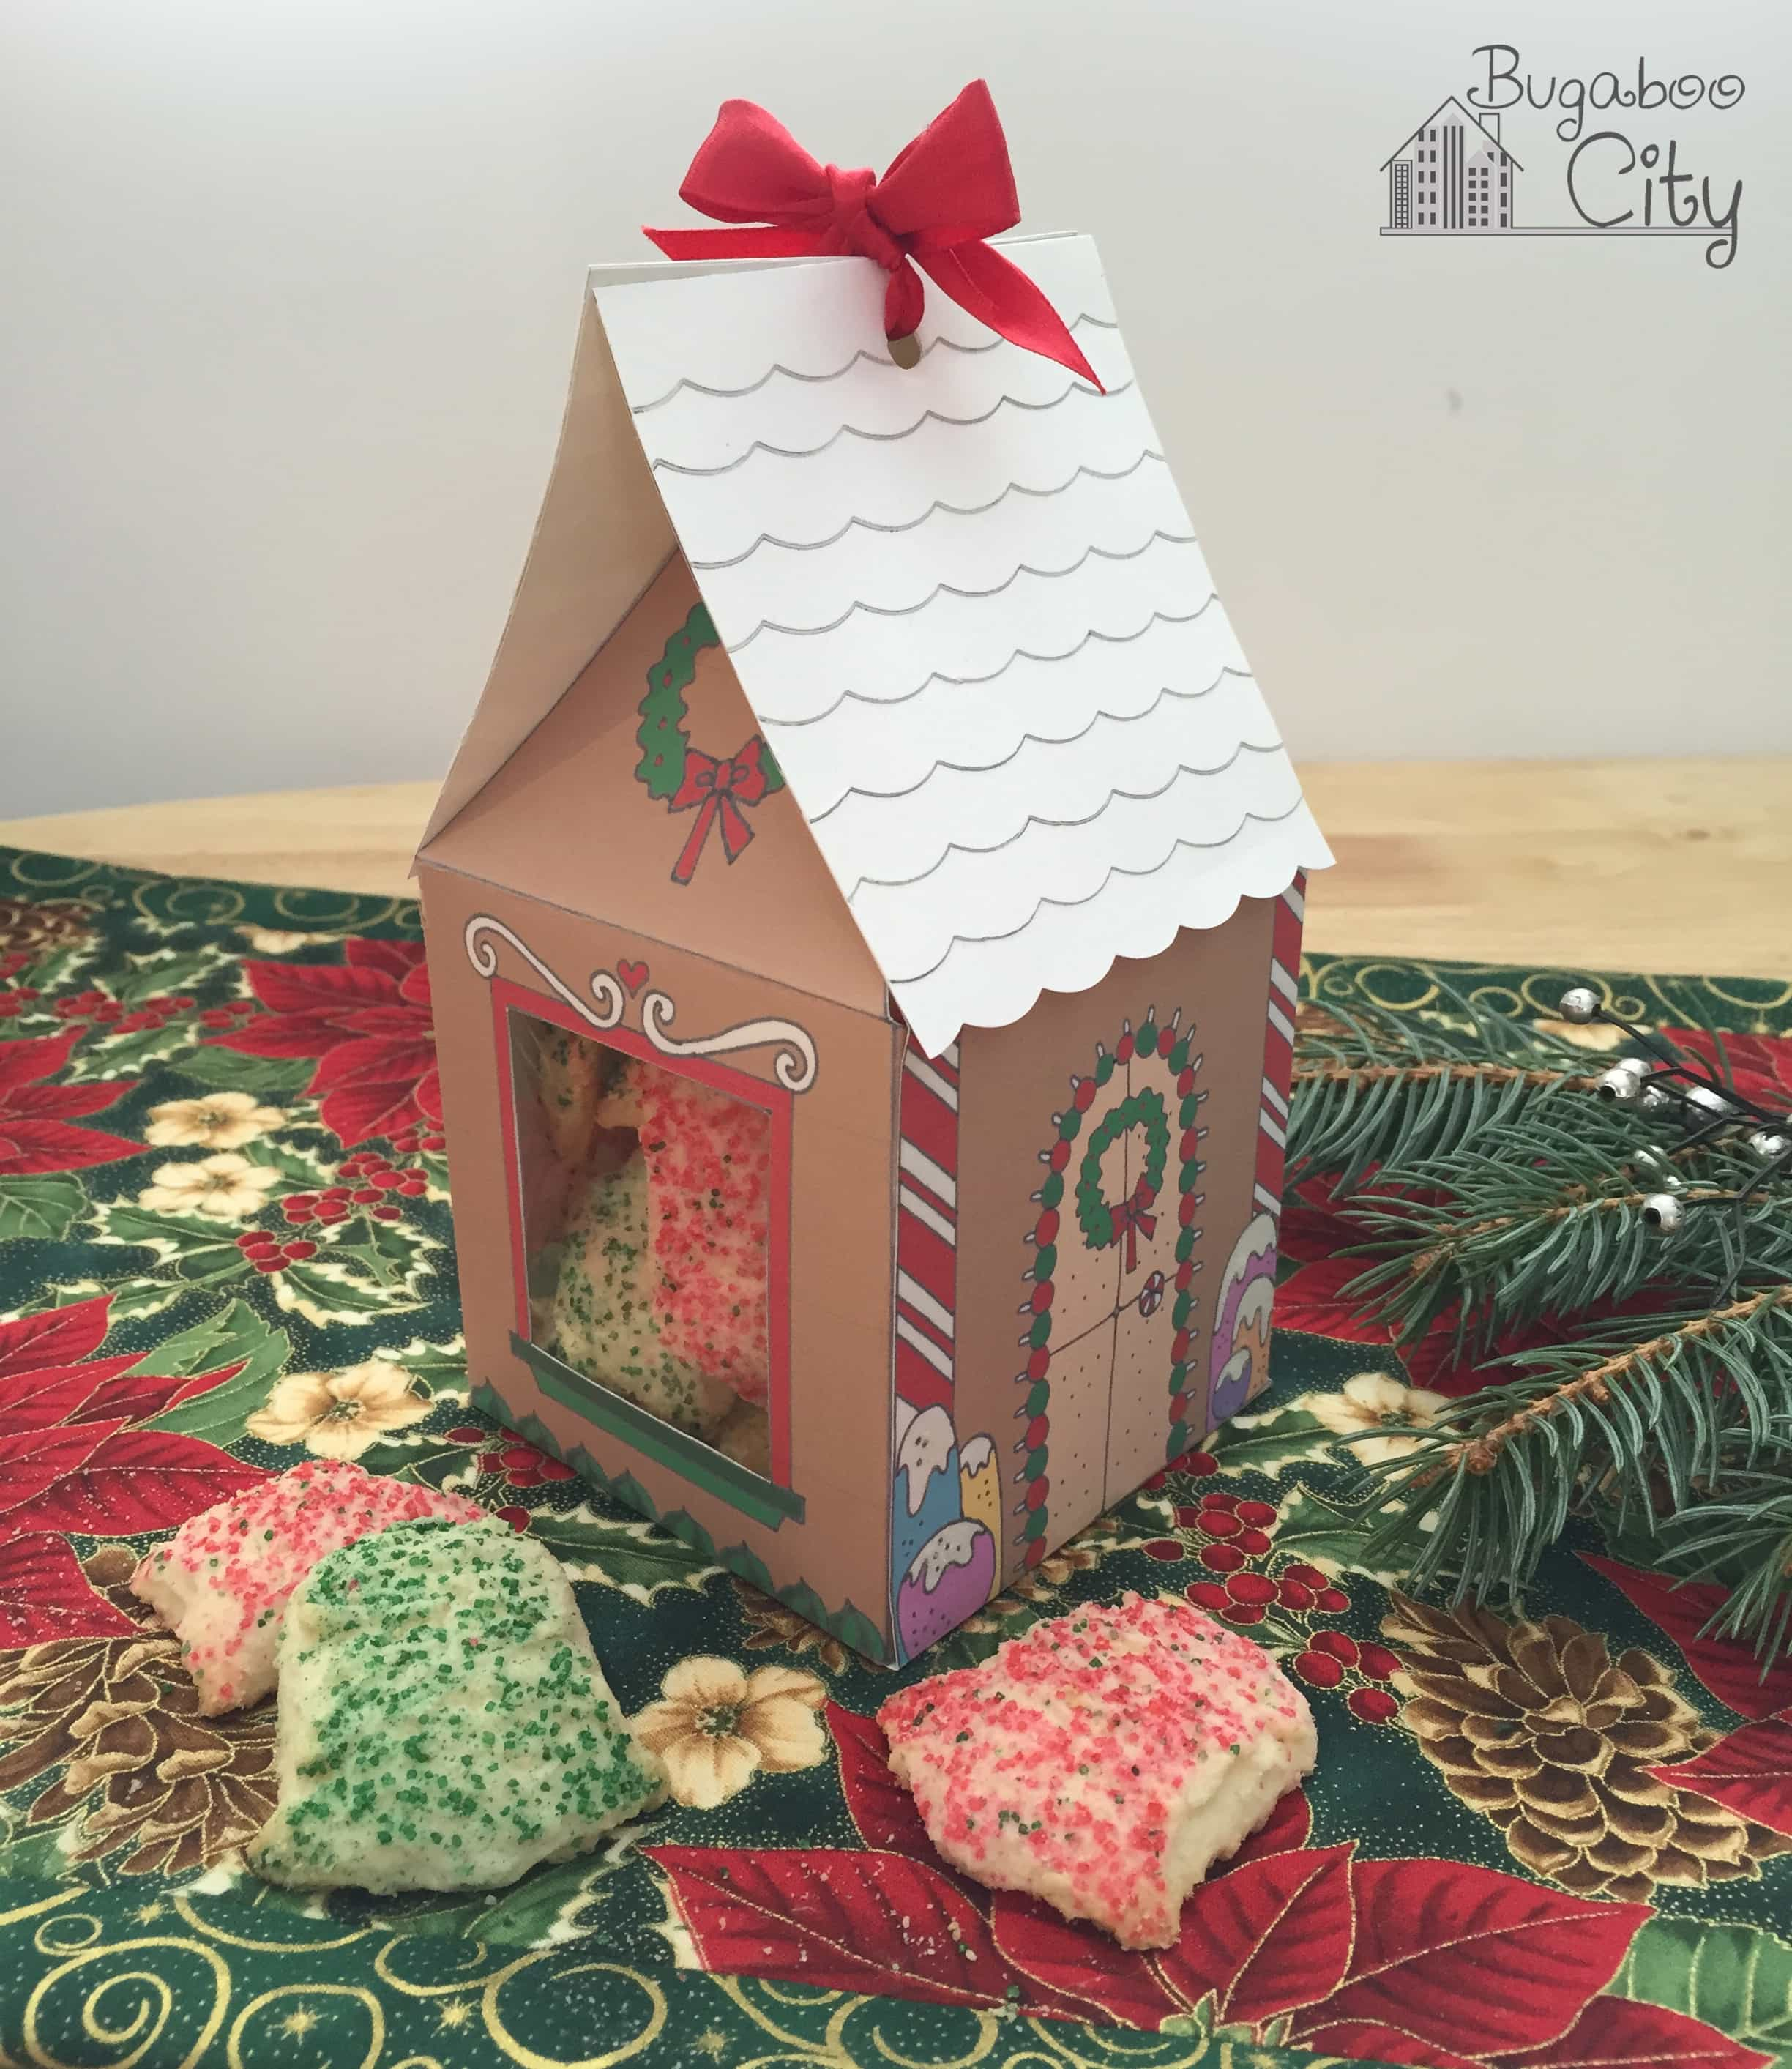 Gingerbread house treat boxes bugaboocity